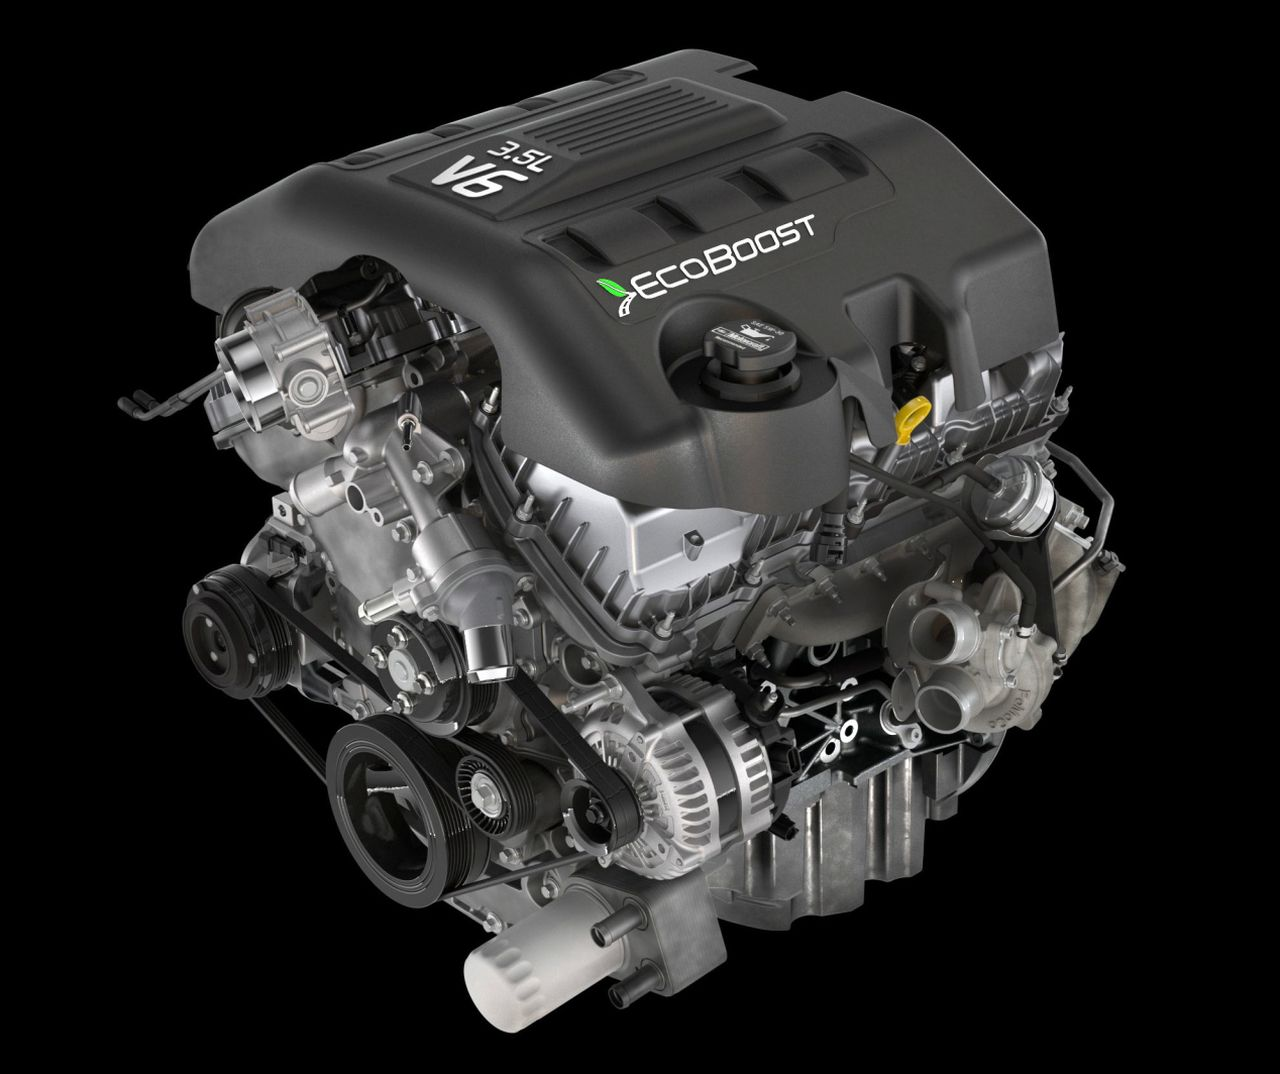 Mks Ecoboost 3 5 Engine Diagram Wiring Diagrams Instructions 2012 Ford F 150 Turbo Engines Explained Autoevolution